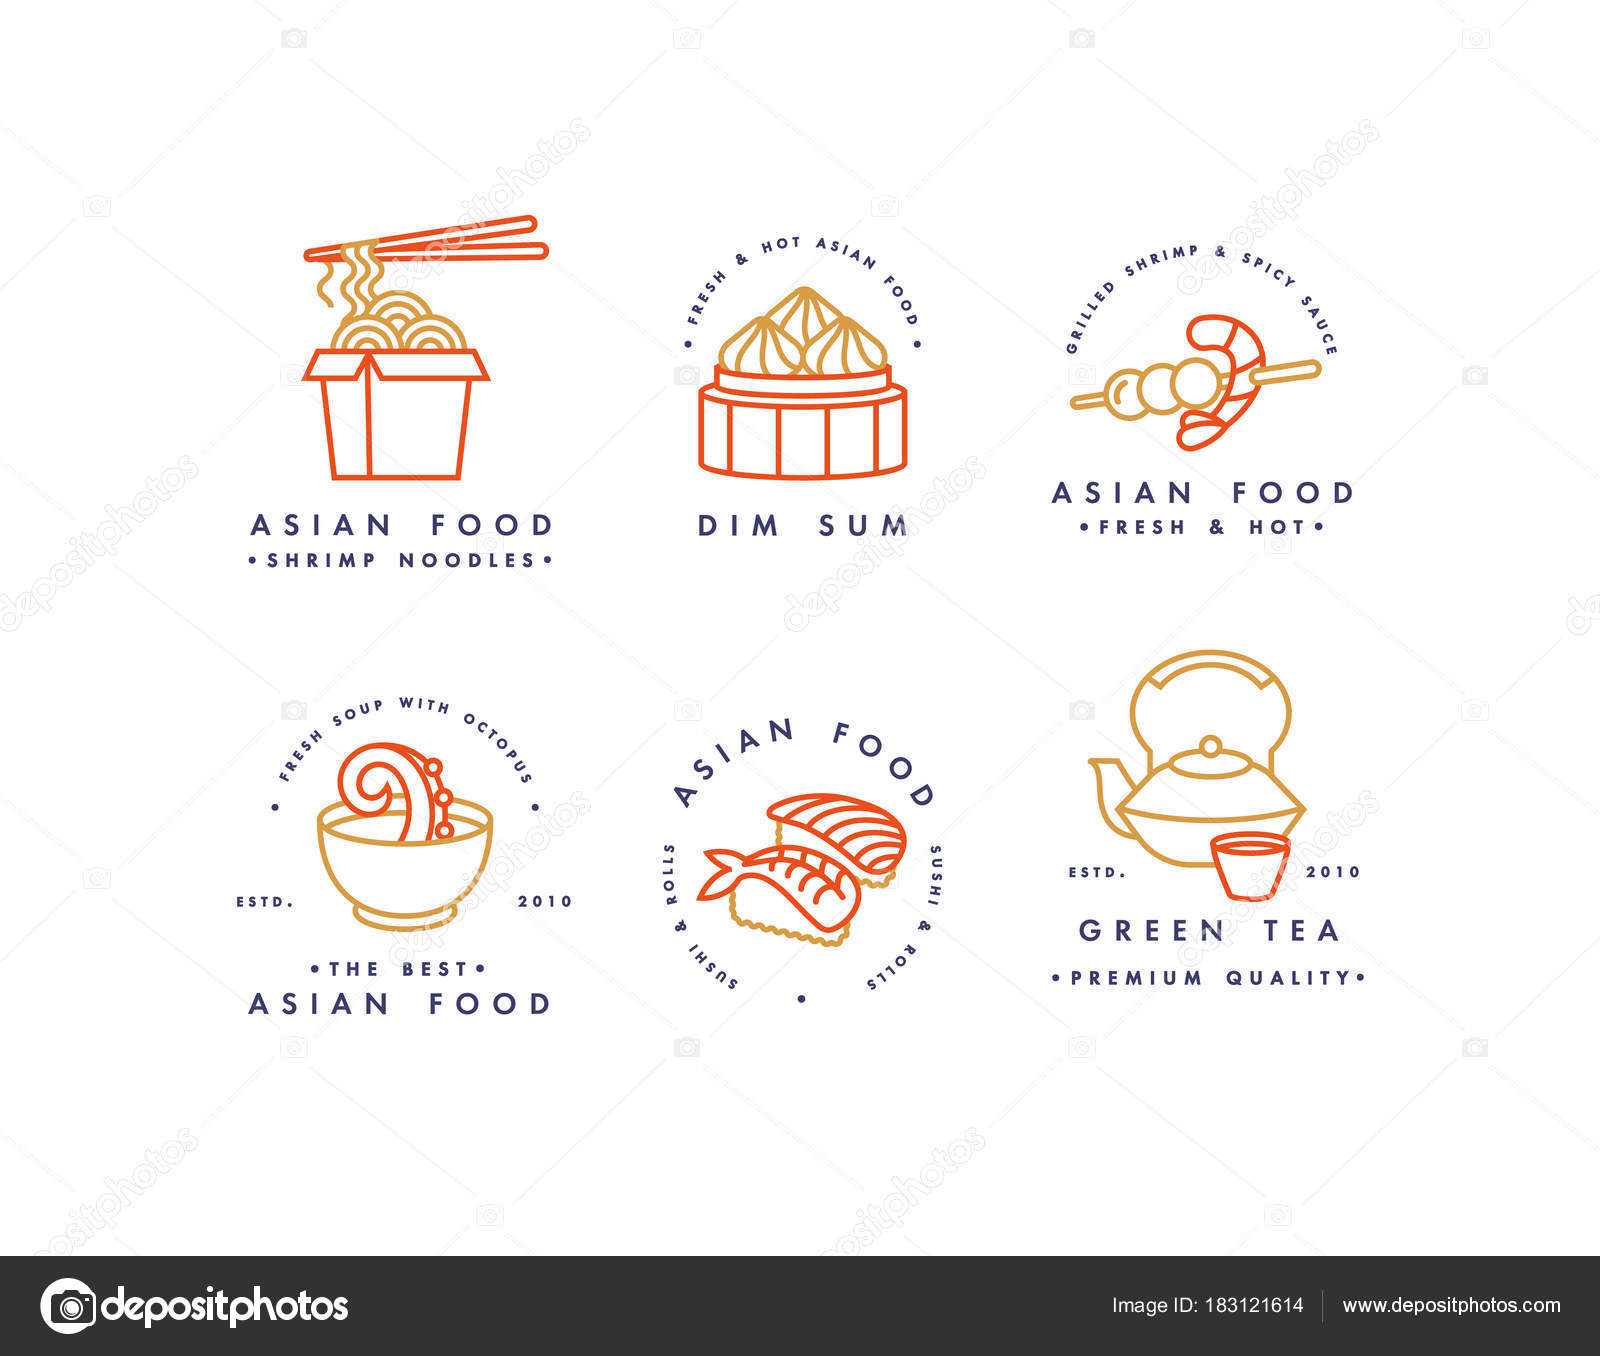 ᐈ dim sum stock vectors royalty free dim sum illustrations download on depositphotos https depositphotos com 183121614 stock illustration vector set of logo design html